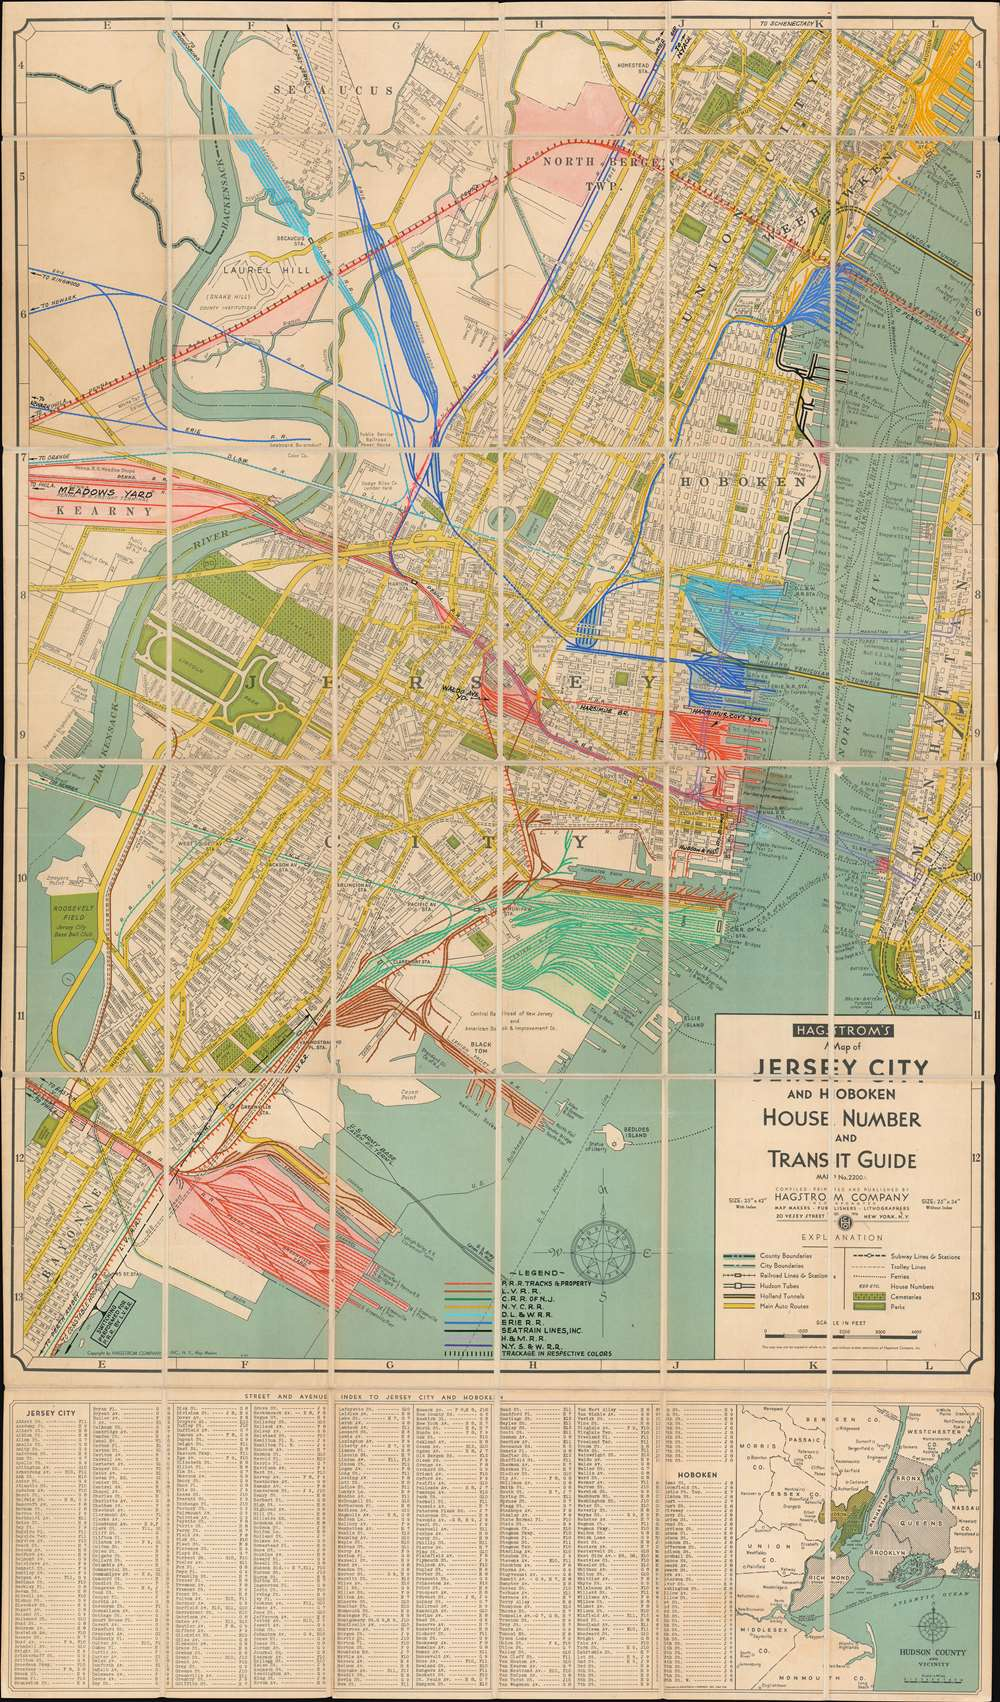 Hagstrom's Map of Jersey City and Hoboken House Number and Transit Guide Map No. 2200A